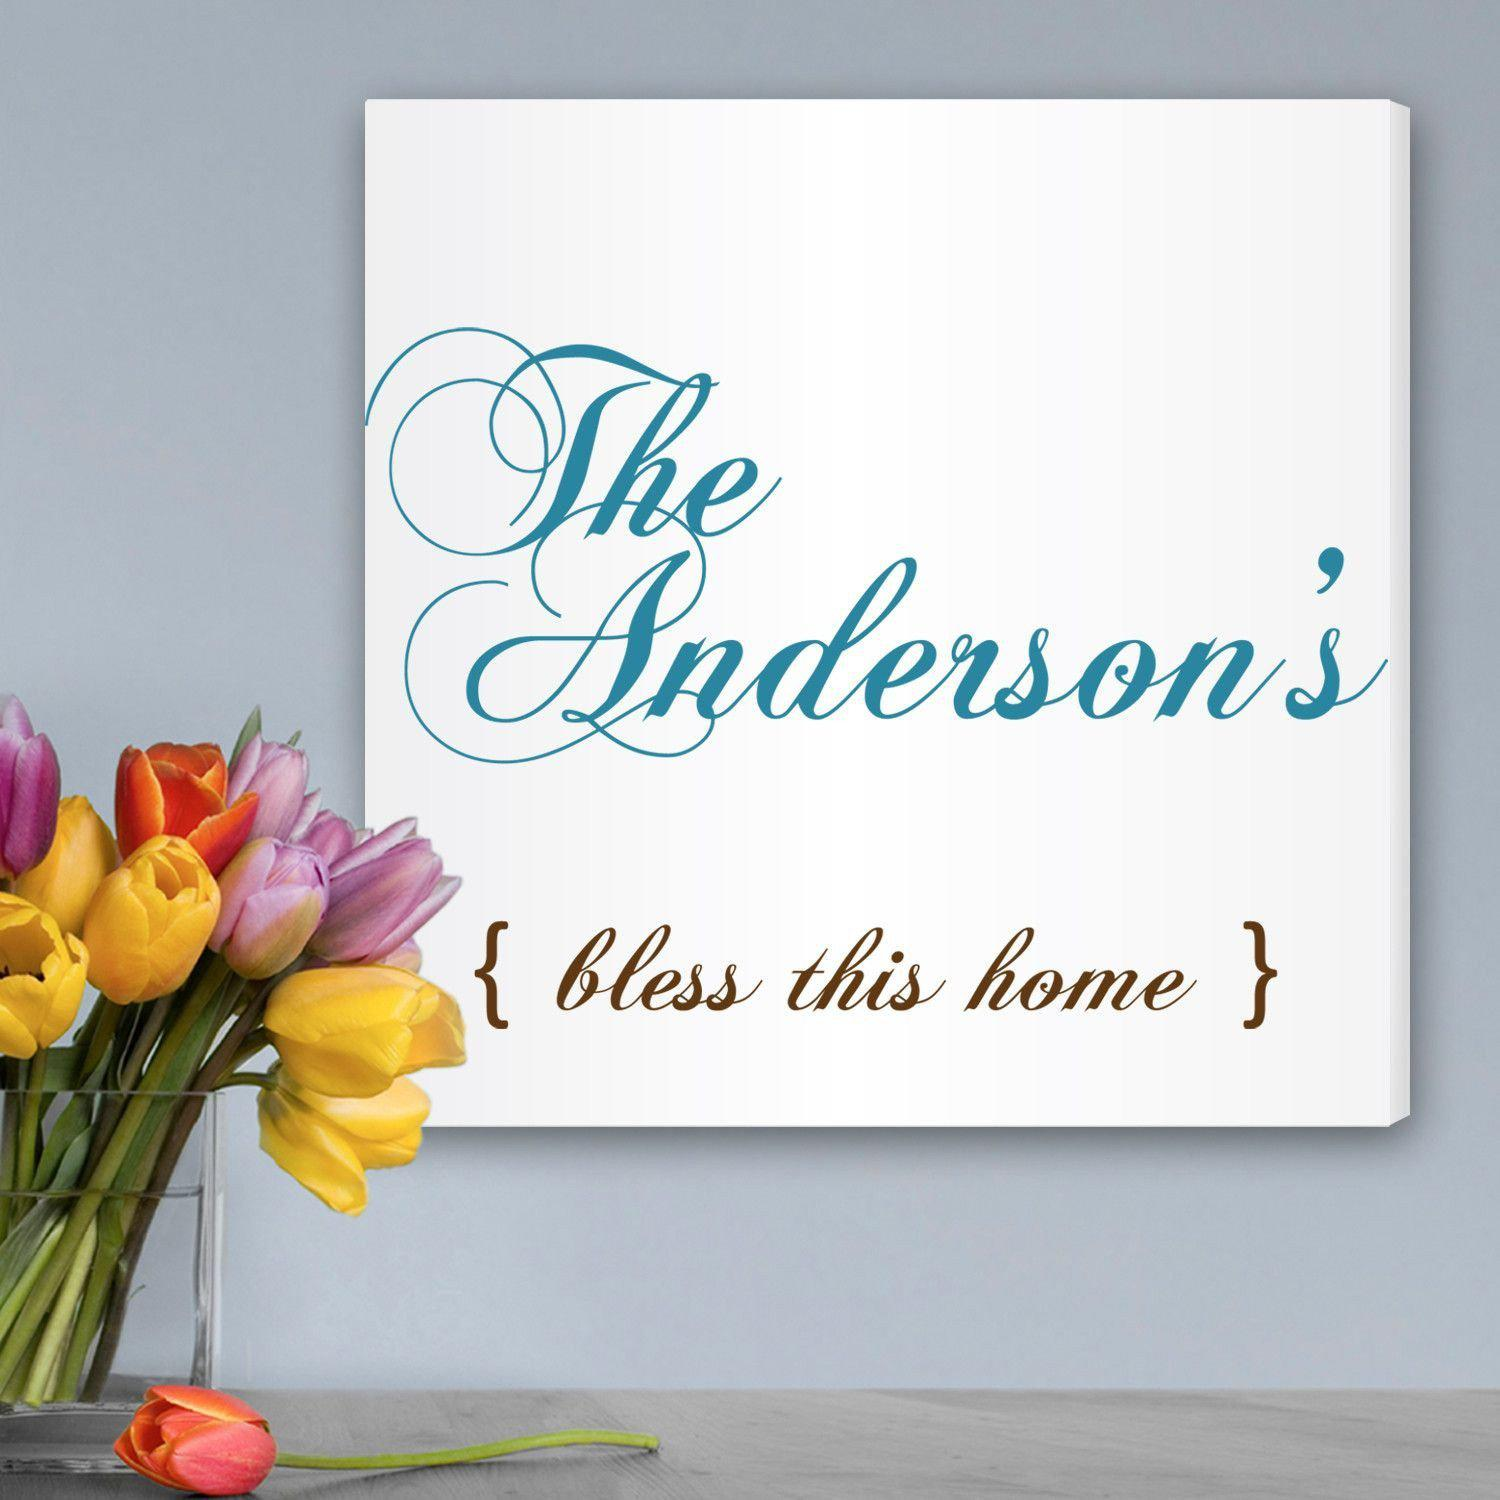 Personalized Bless This Home Canvas Sign